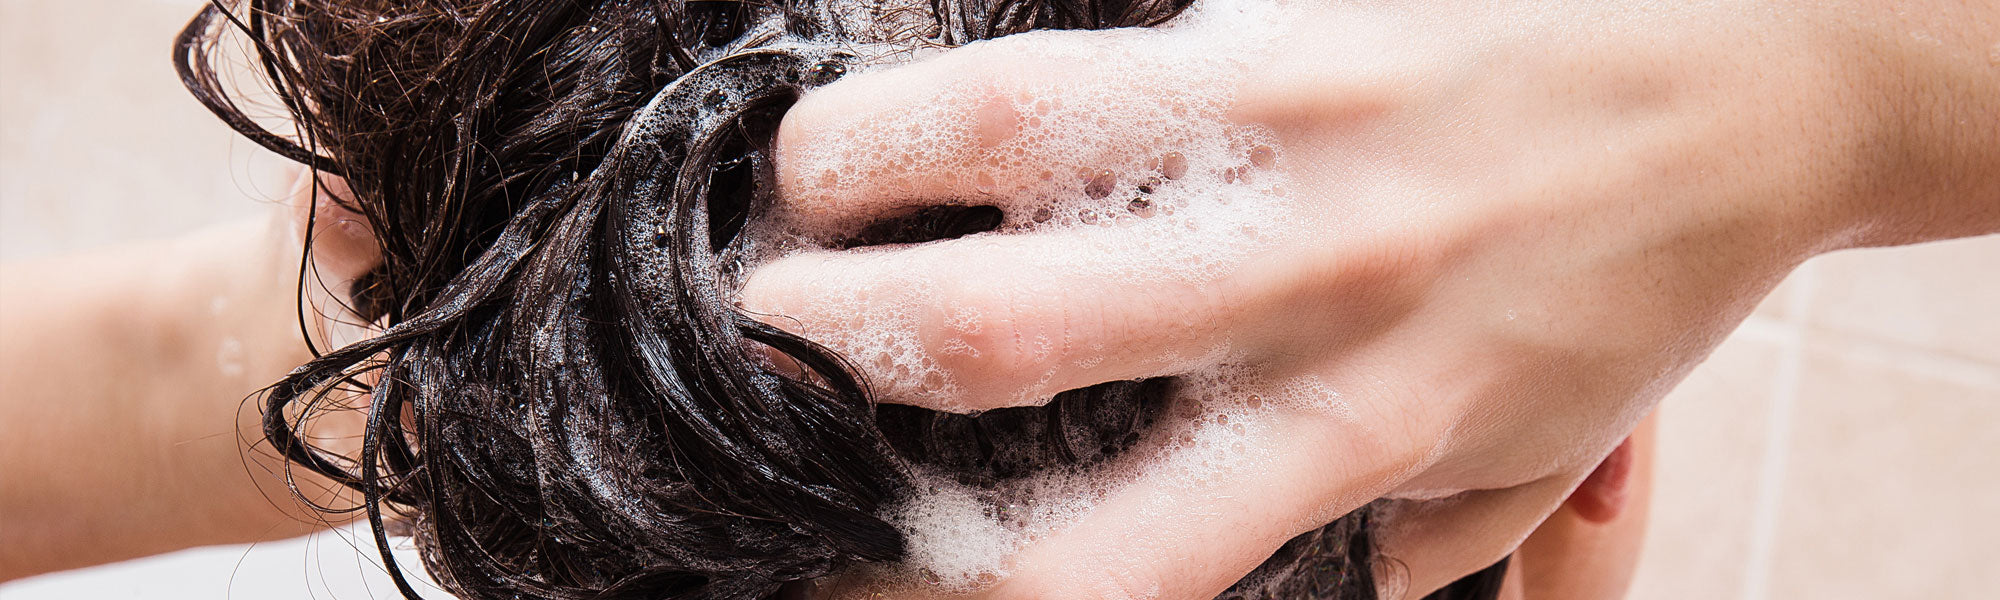 Switching to Natural Shampoo: What You Need to Know